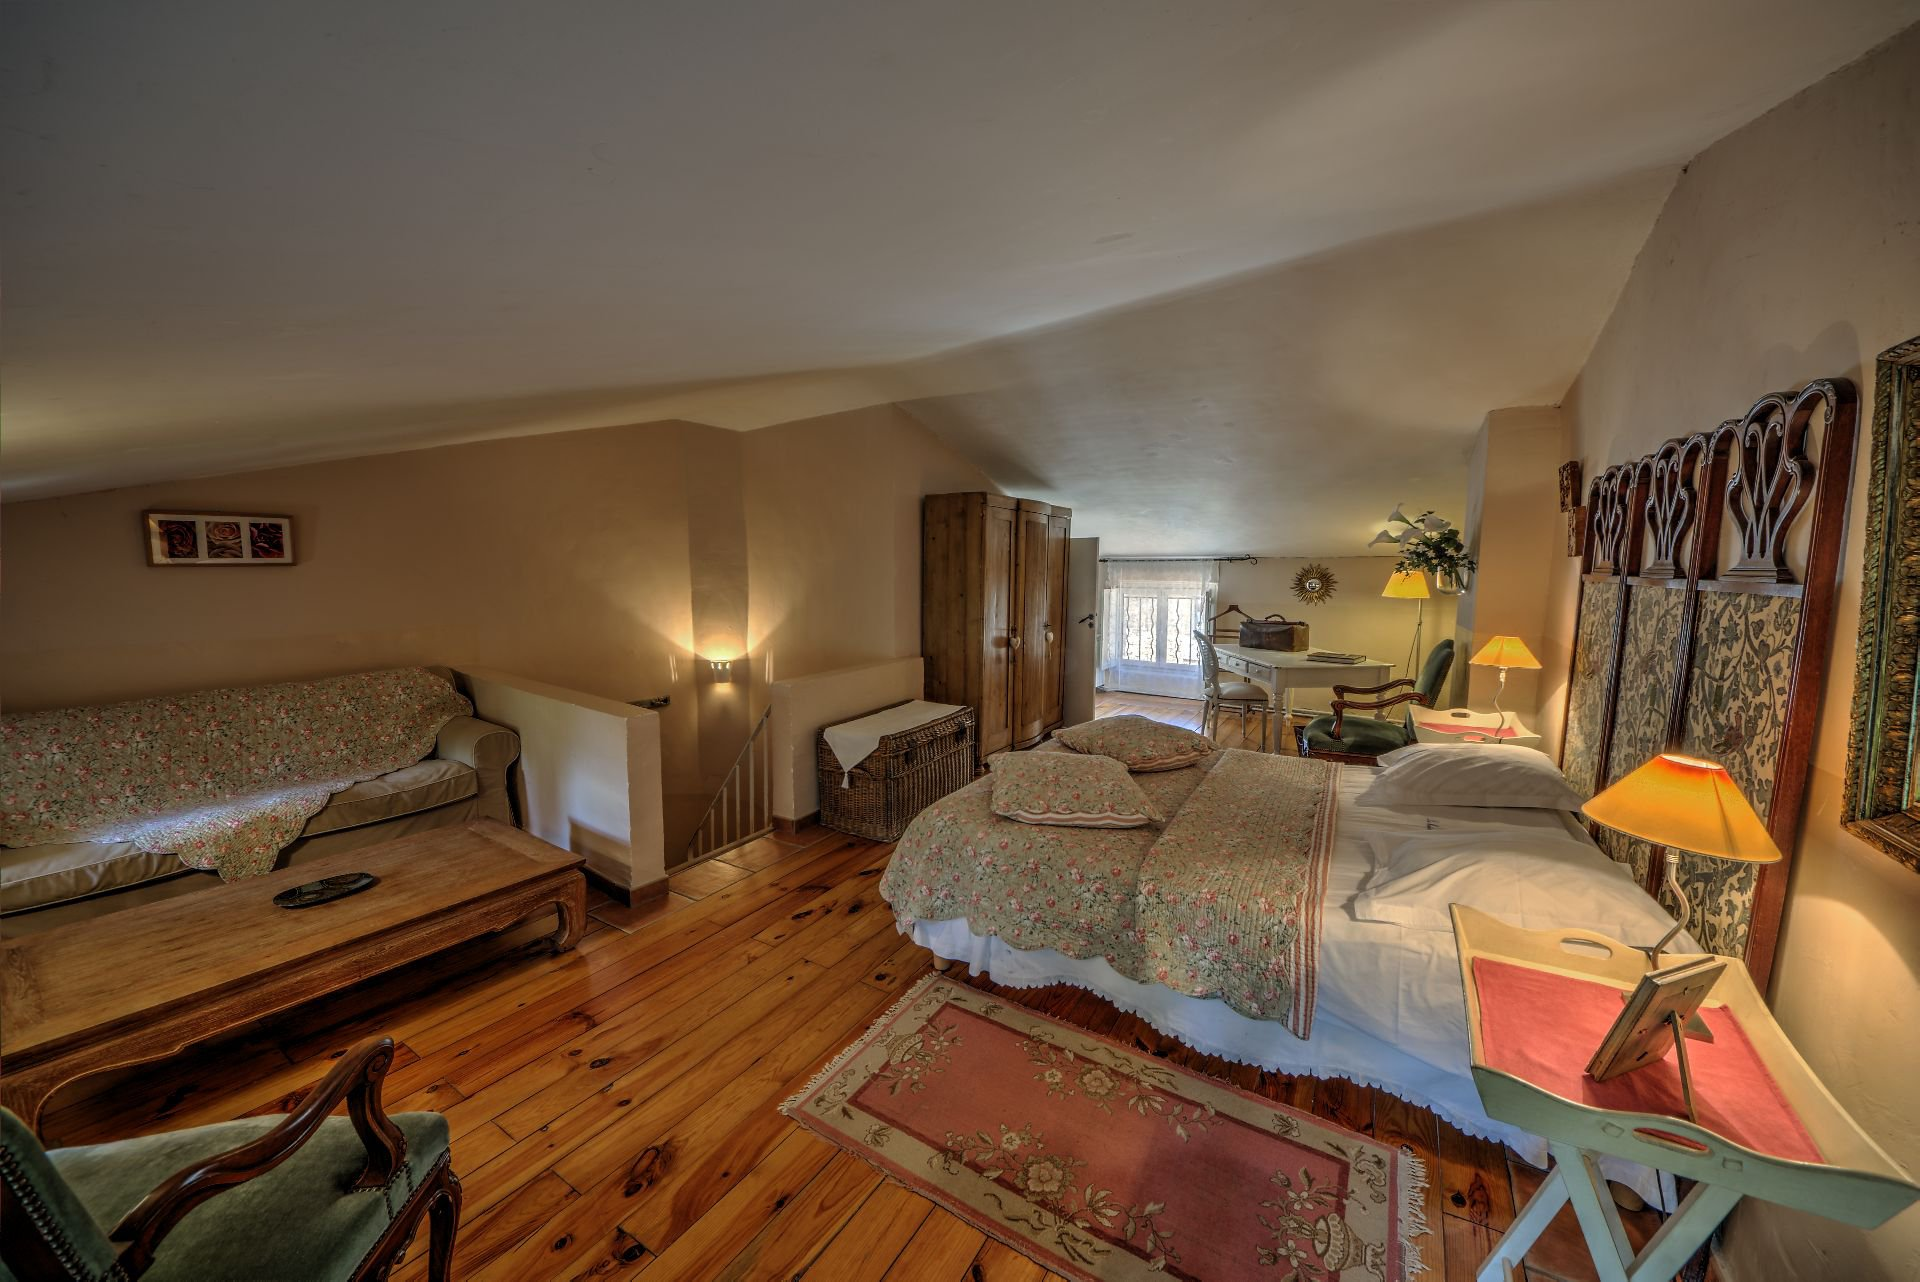 Suite 5 of the guest house with garden and pool Rocbaron, Var, Provence